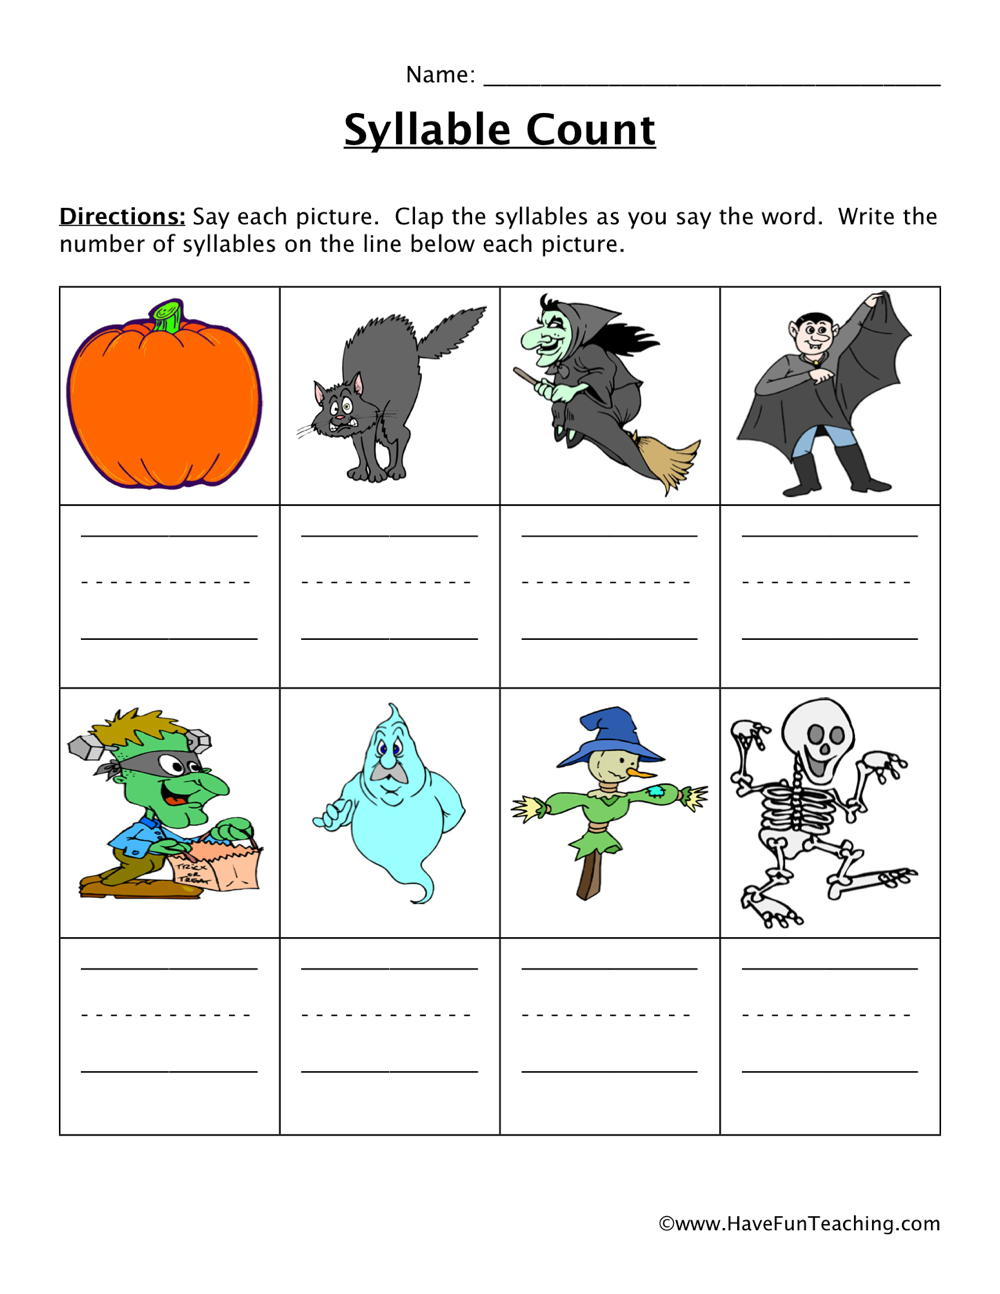 Printables Syllable Worksheets syllable worksheets page 2 of 3 have fun teaching worksheet